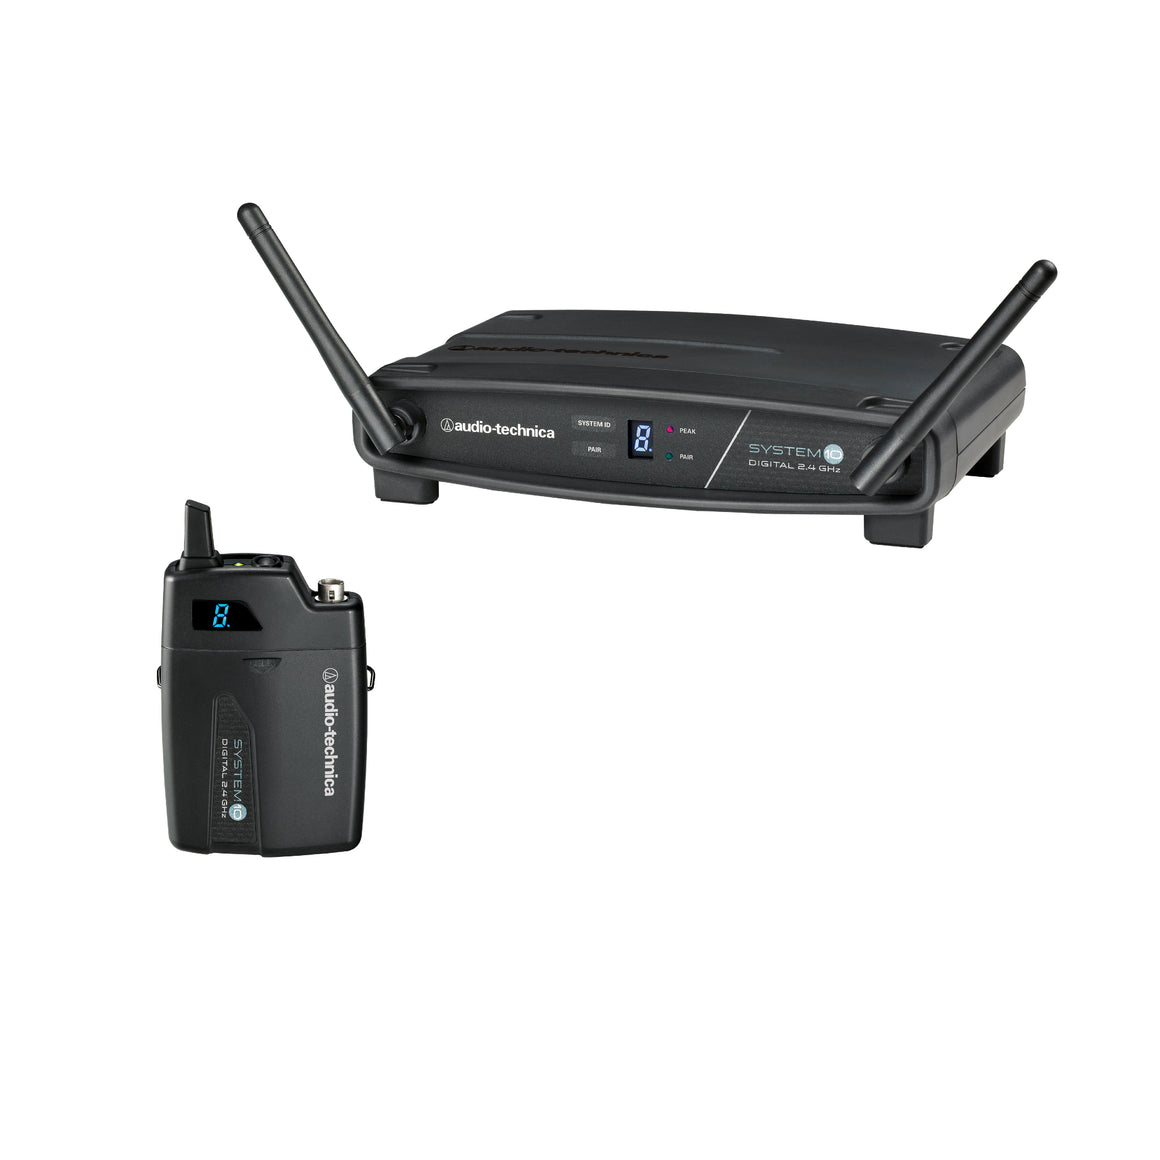 Audio Technica ATW-1101 System 10 Digital Wireless Bodypack